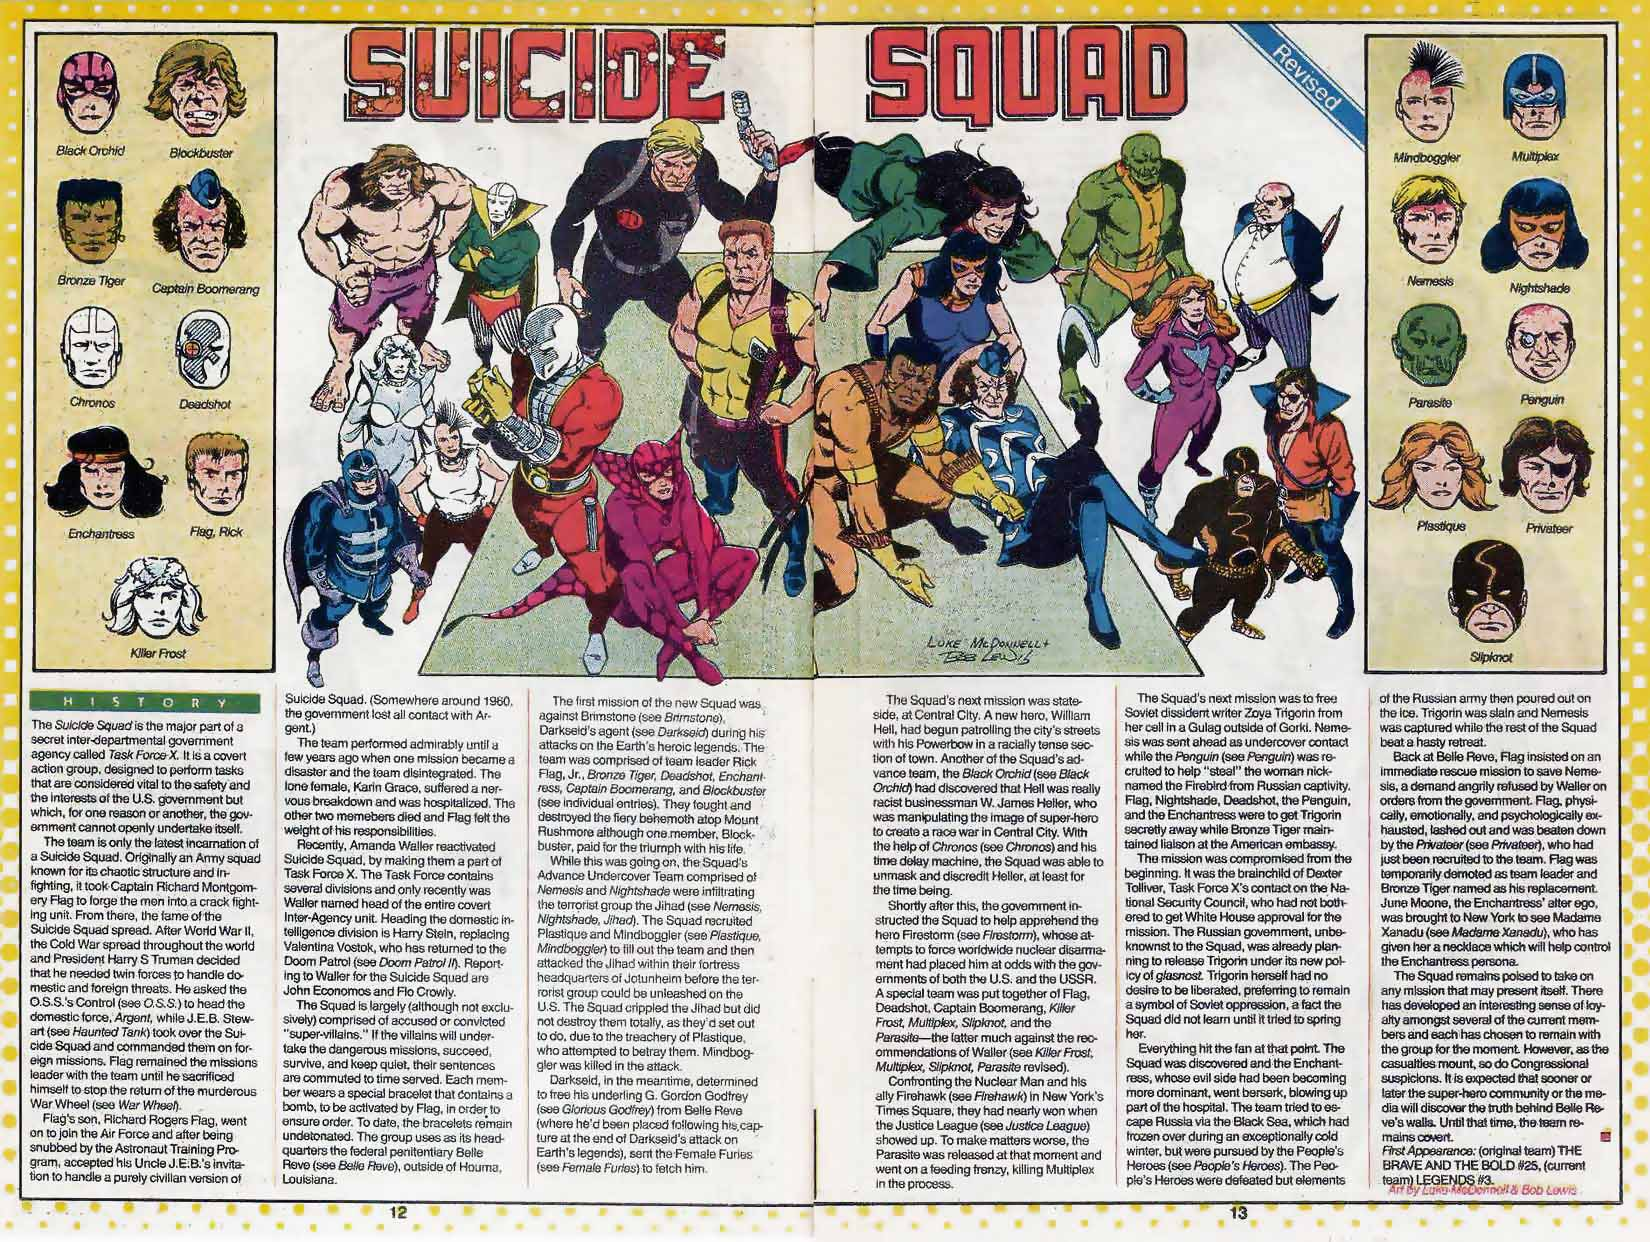 Who's Who Suicide Squad by Luke McDonnell